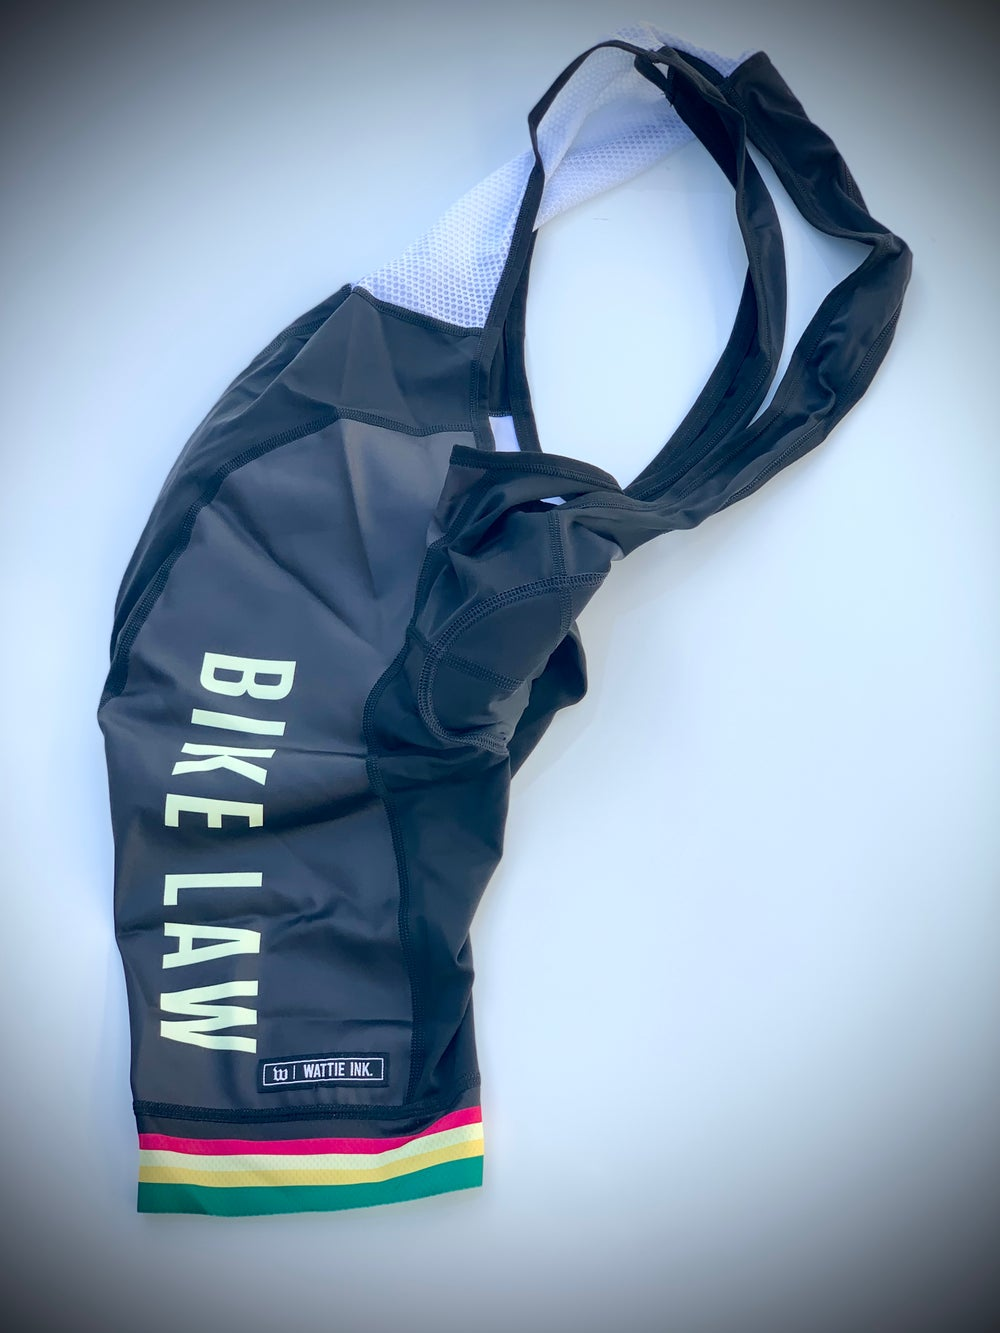 Image of Classic Edition Cycling Bib - Men's - Only Large Left